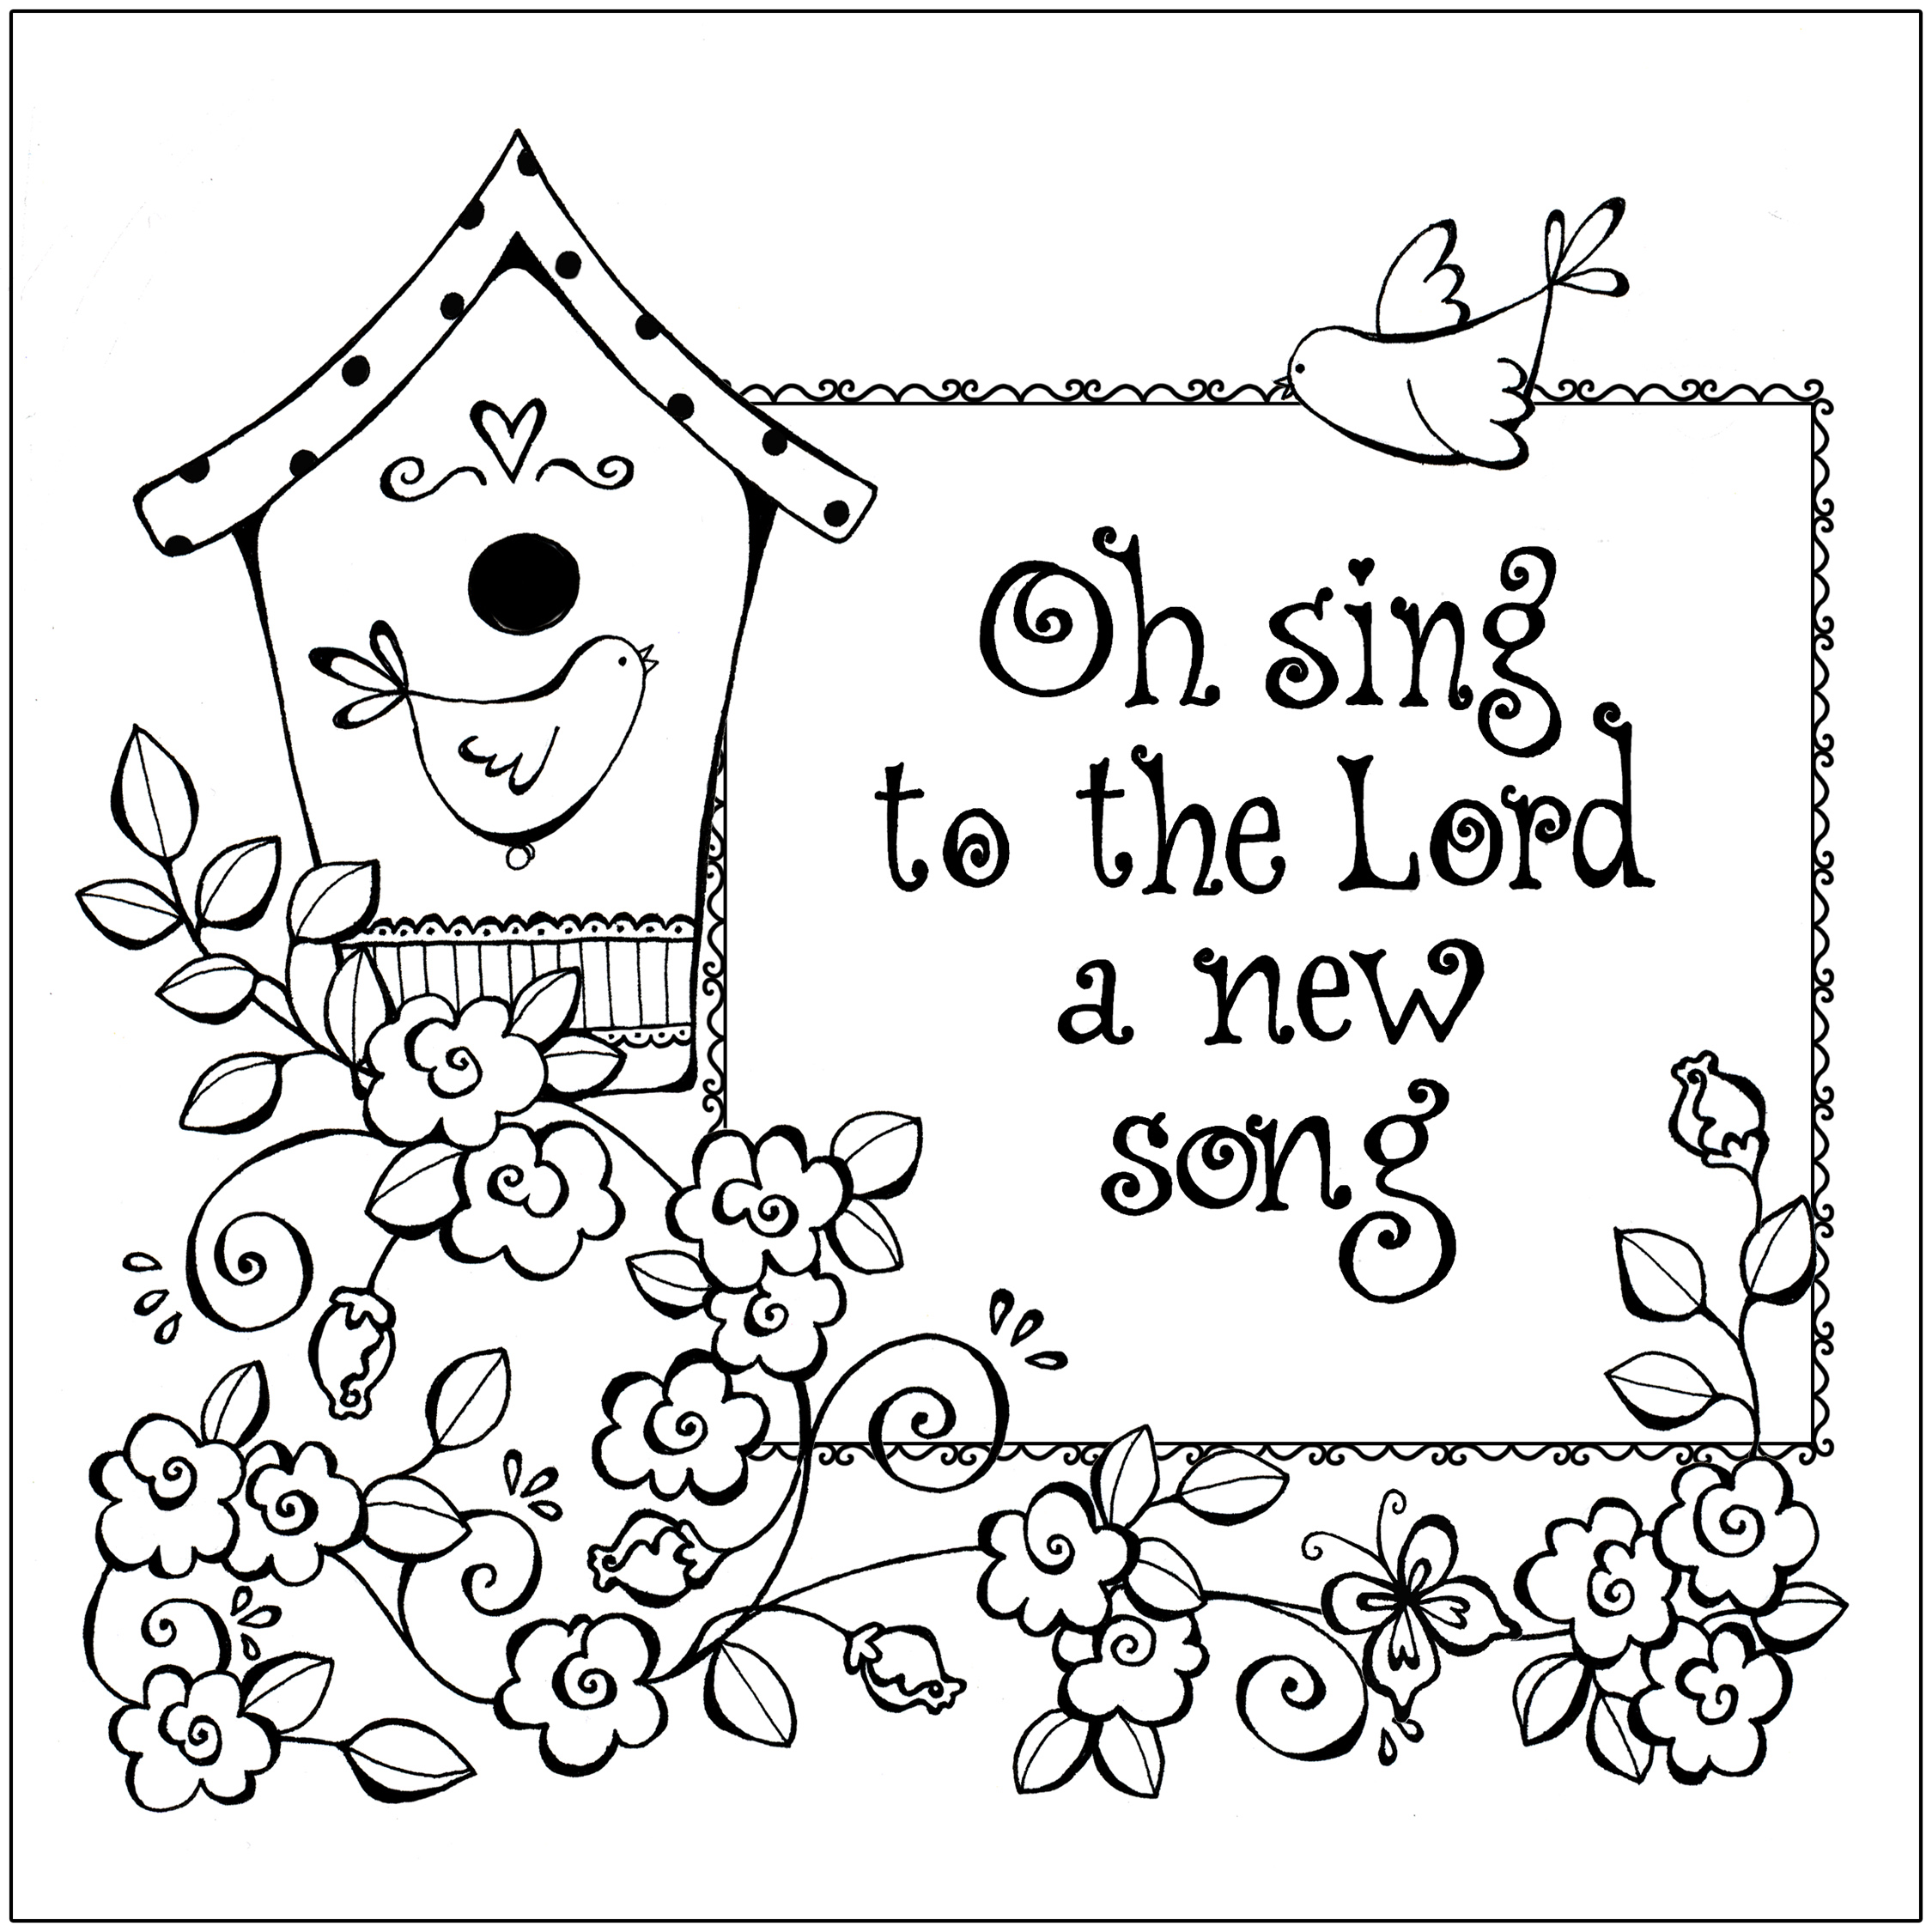 Free Bible Coloring Pages Classy Free Printable Christian Coloring Pages For Kids  Best Coloring Design Ideas